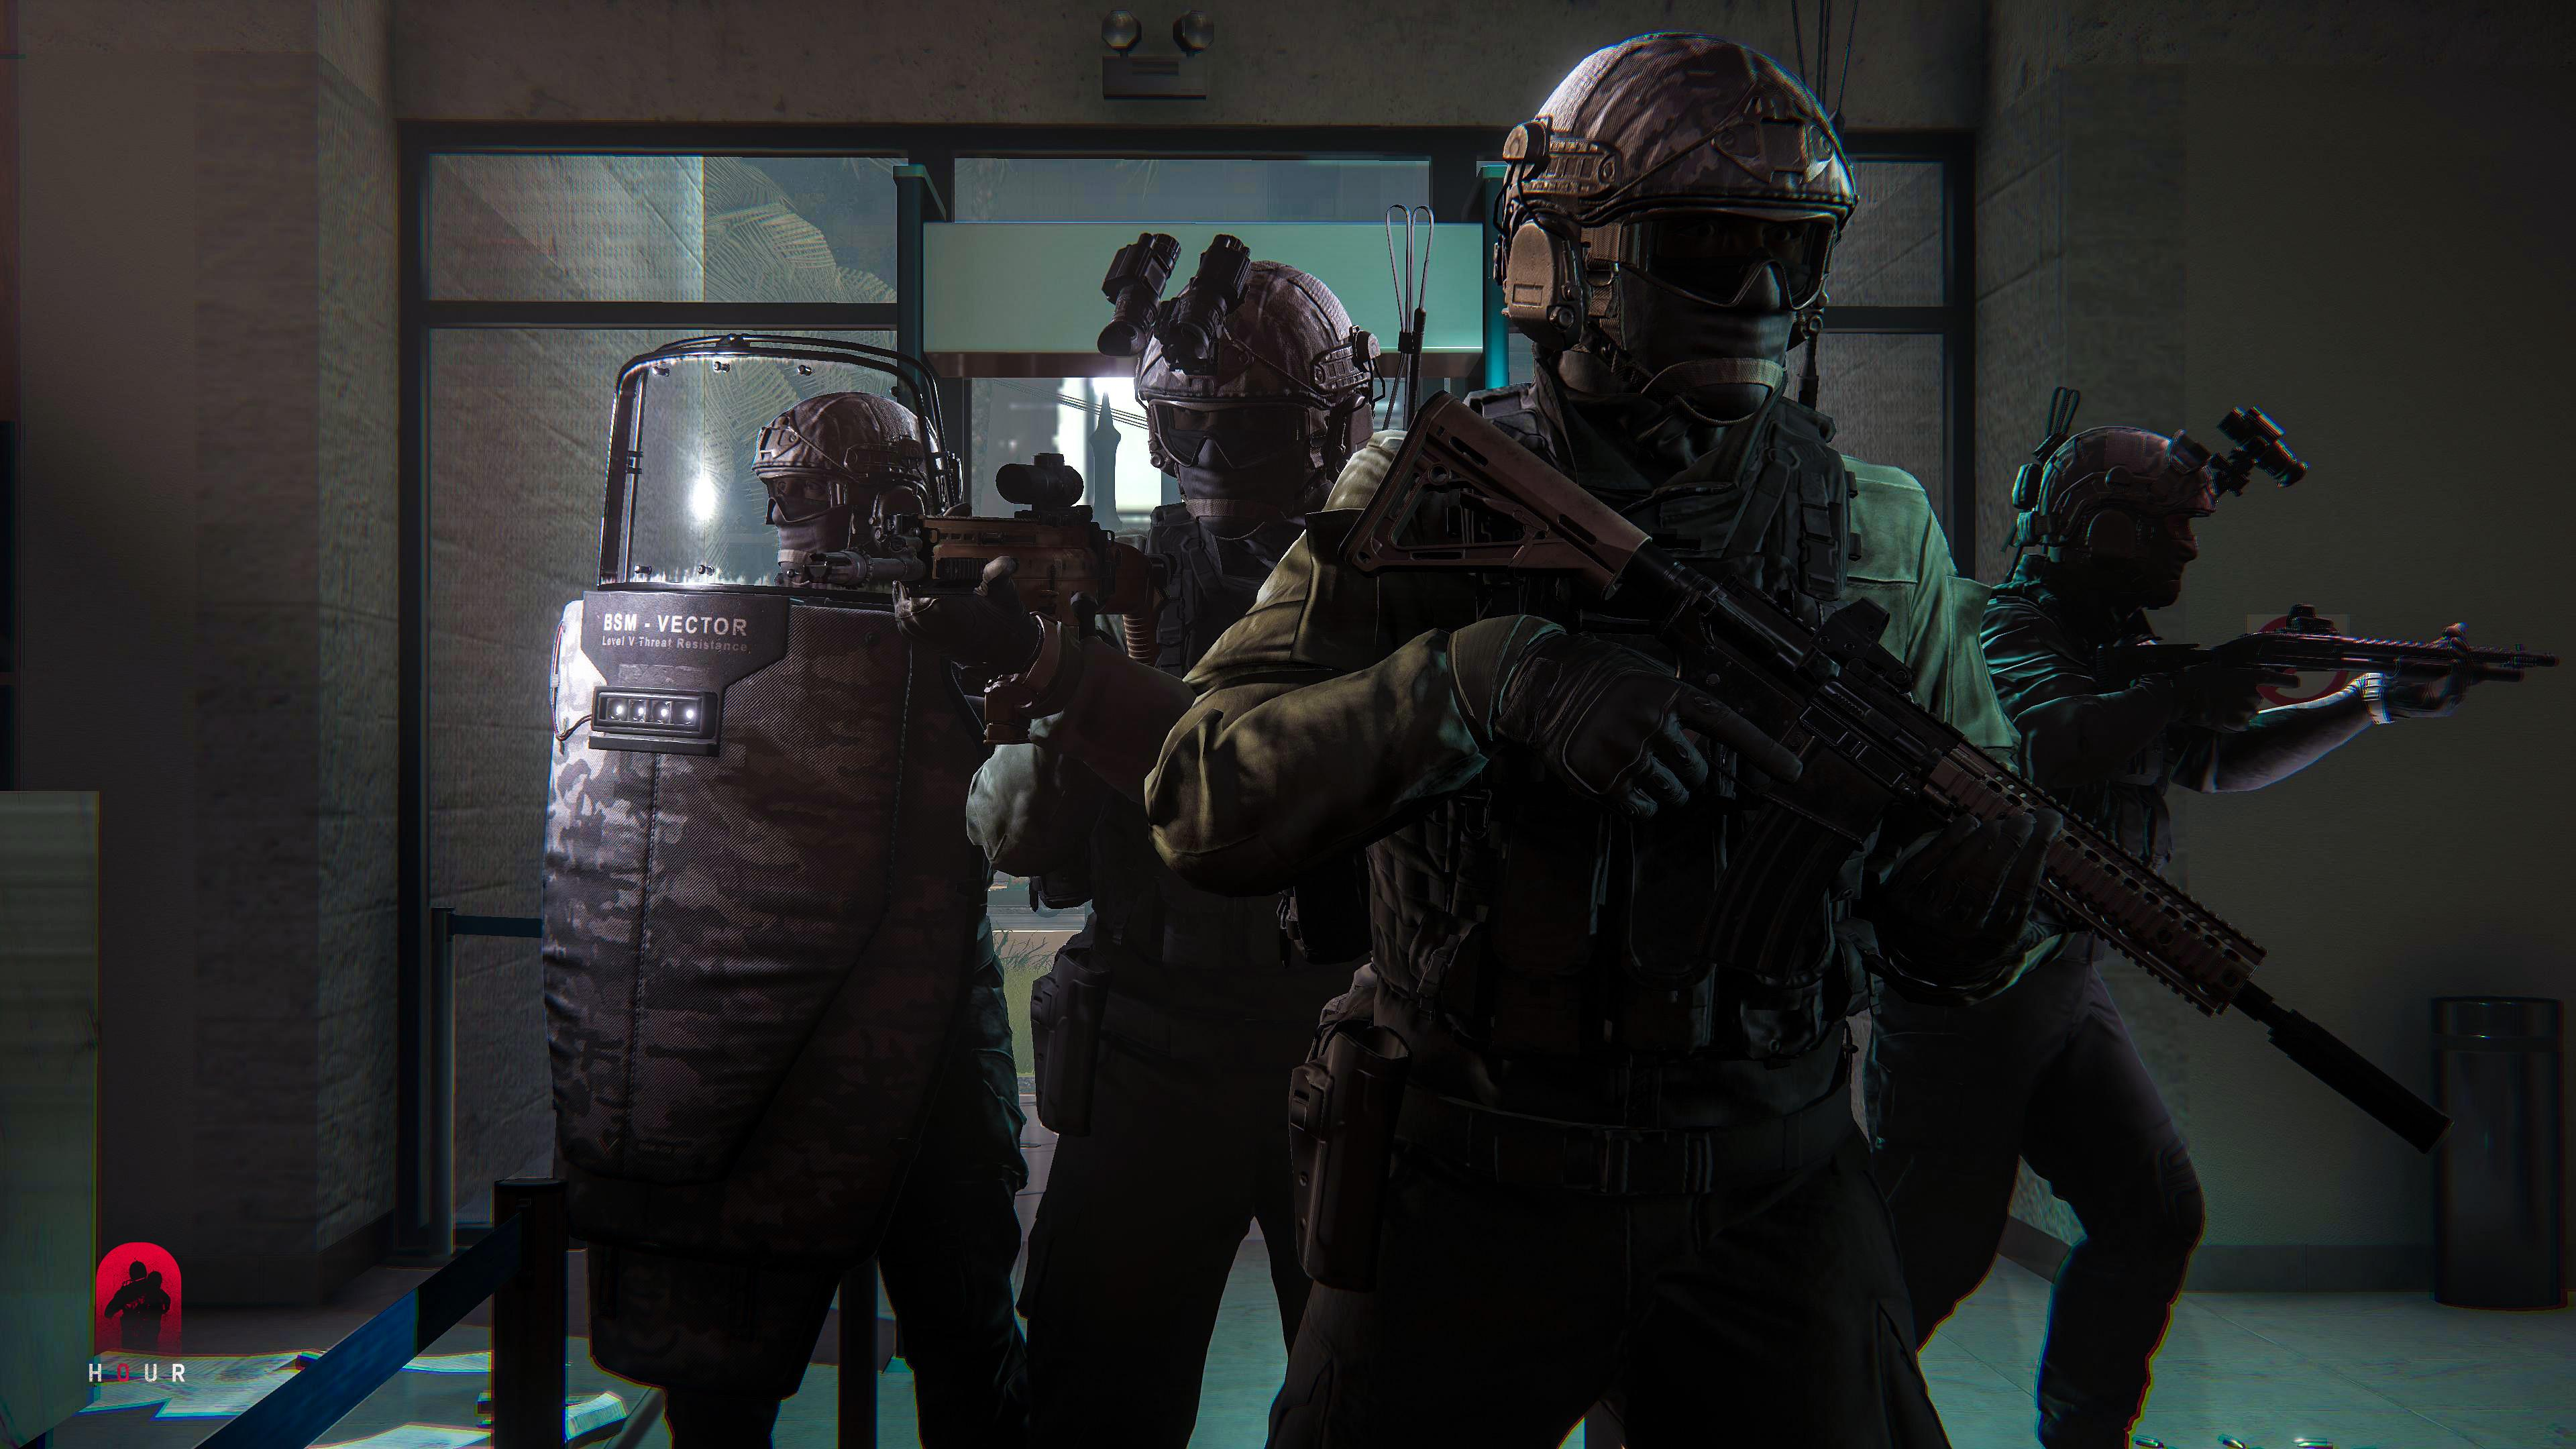 Zero Hour offers intense CQB encounters in PvE and PvP scenarios